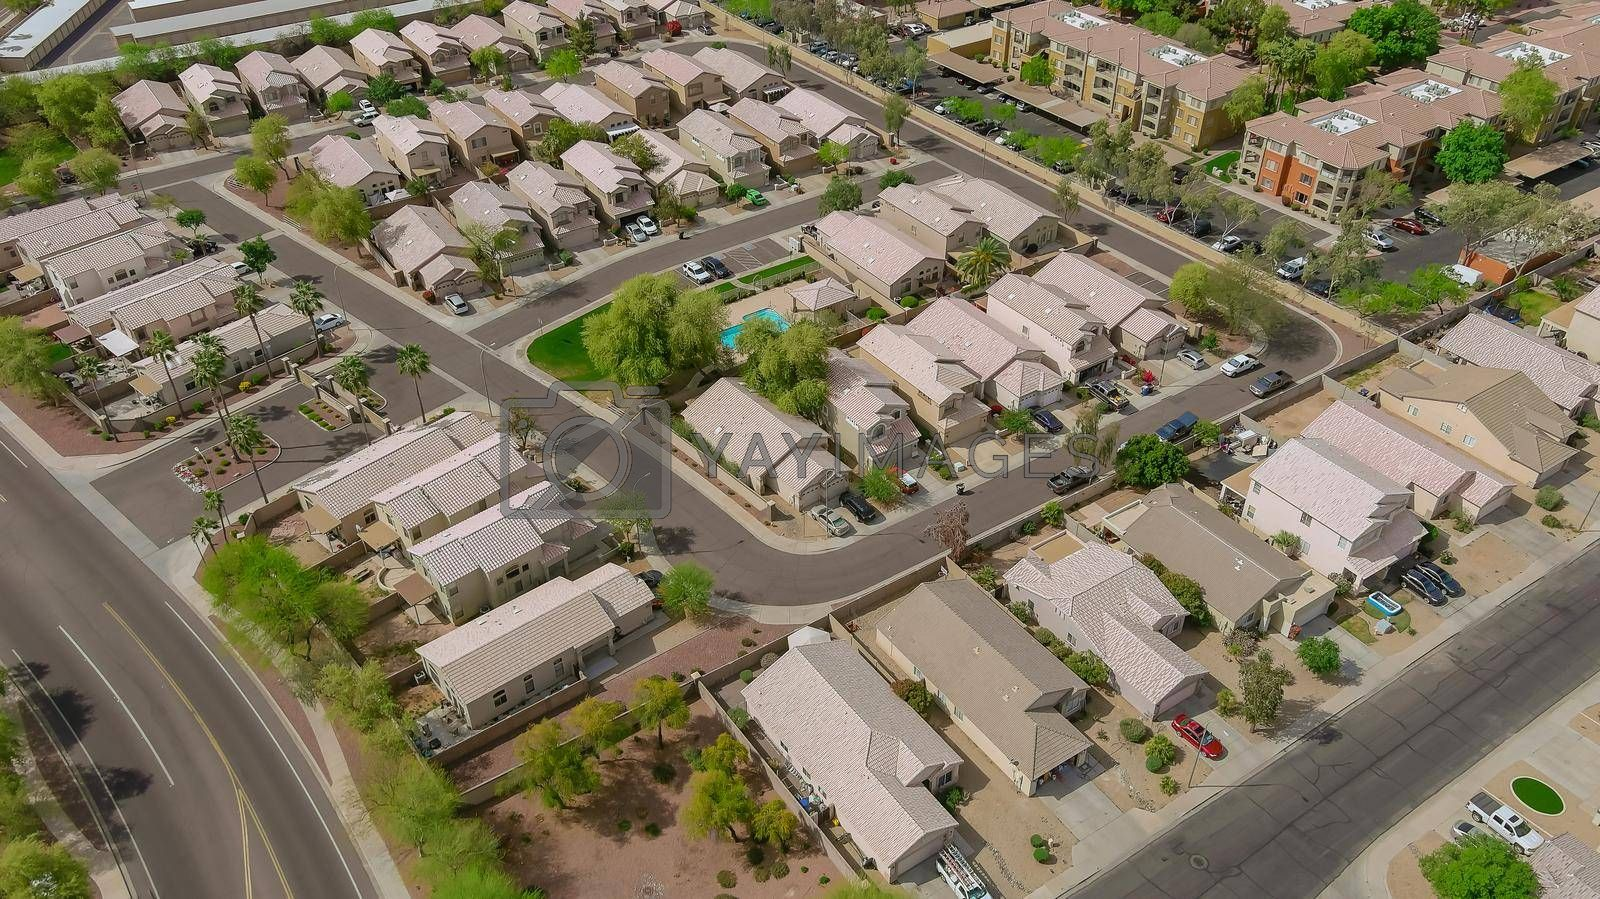 Aerial view of residential quarters at Avondale beautiful town urban landscape the Arizona USA